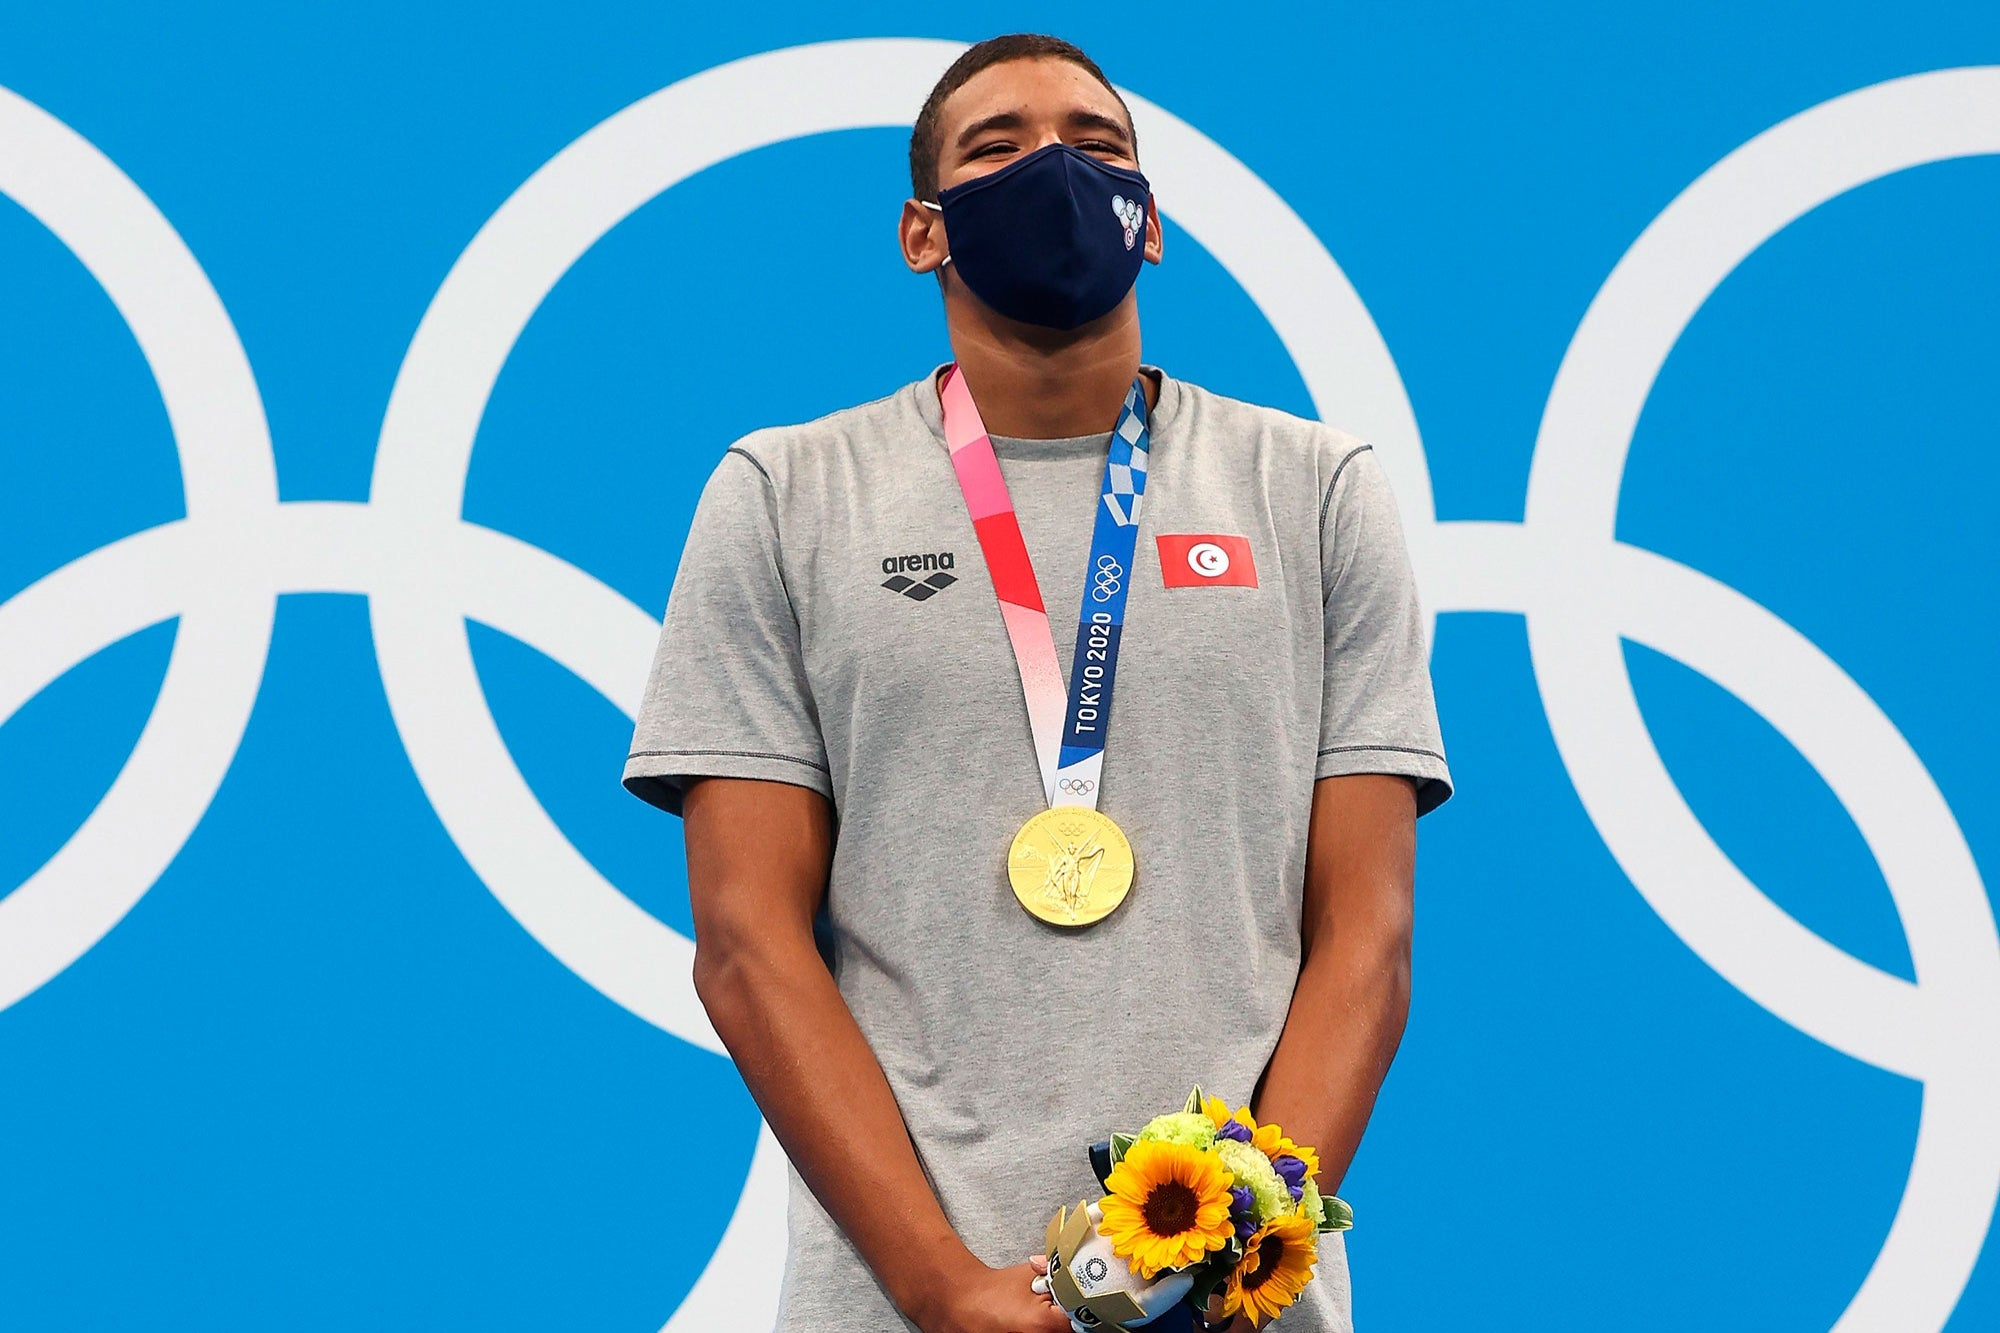 Ahmed Hafnaoui, the young swimmer from Tunisia who impressed the world by winning the gold medal at Tokyo 2020